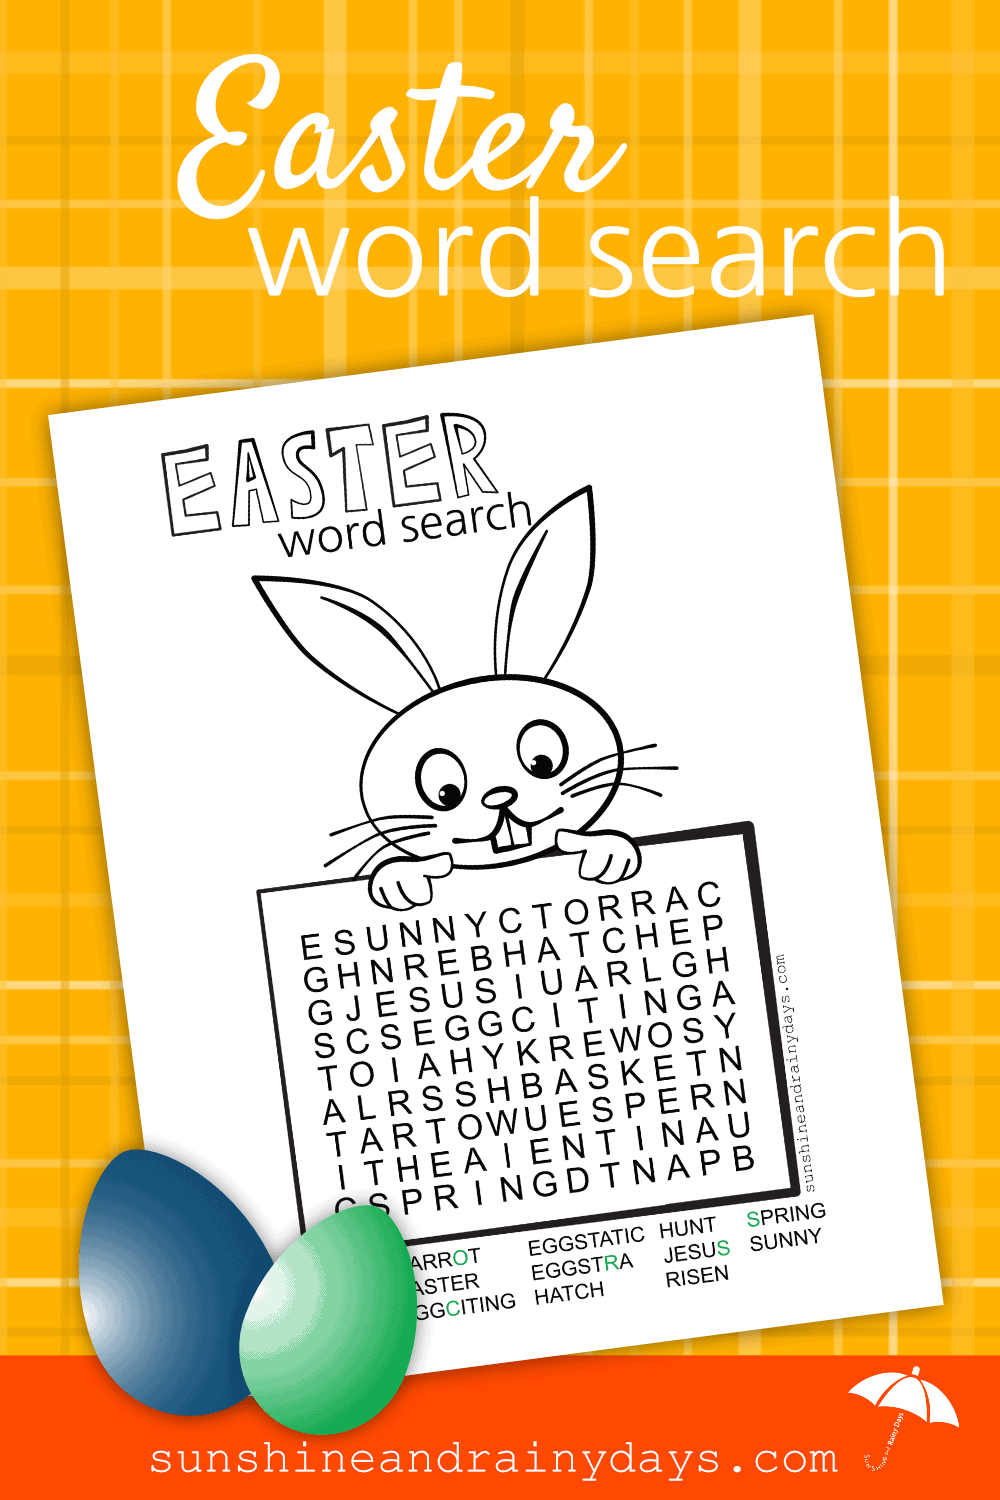 Easter is the day we celebrate the resurrection of Jesus Christ! Bunnies, chicks, and eggs represent new life and hope for our future! We have created an Easter Word Search Printable to help you celebrate!